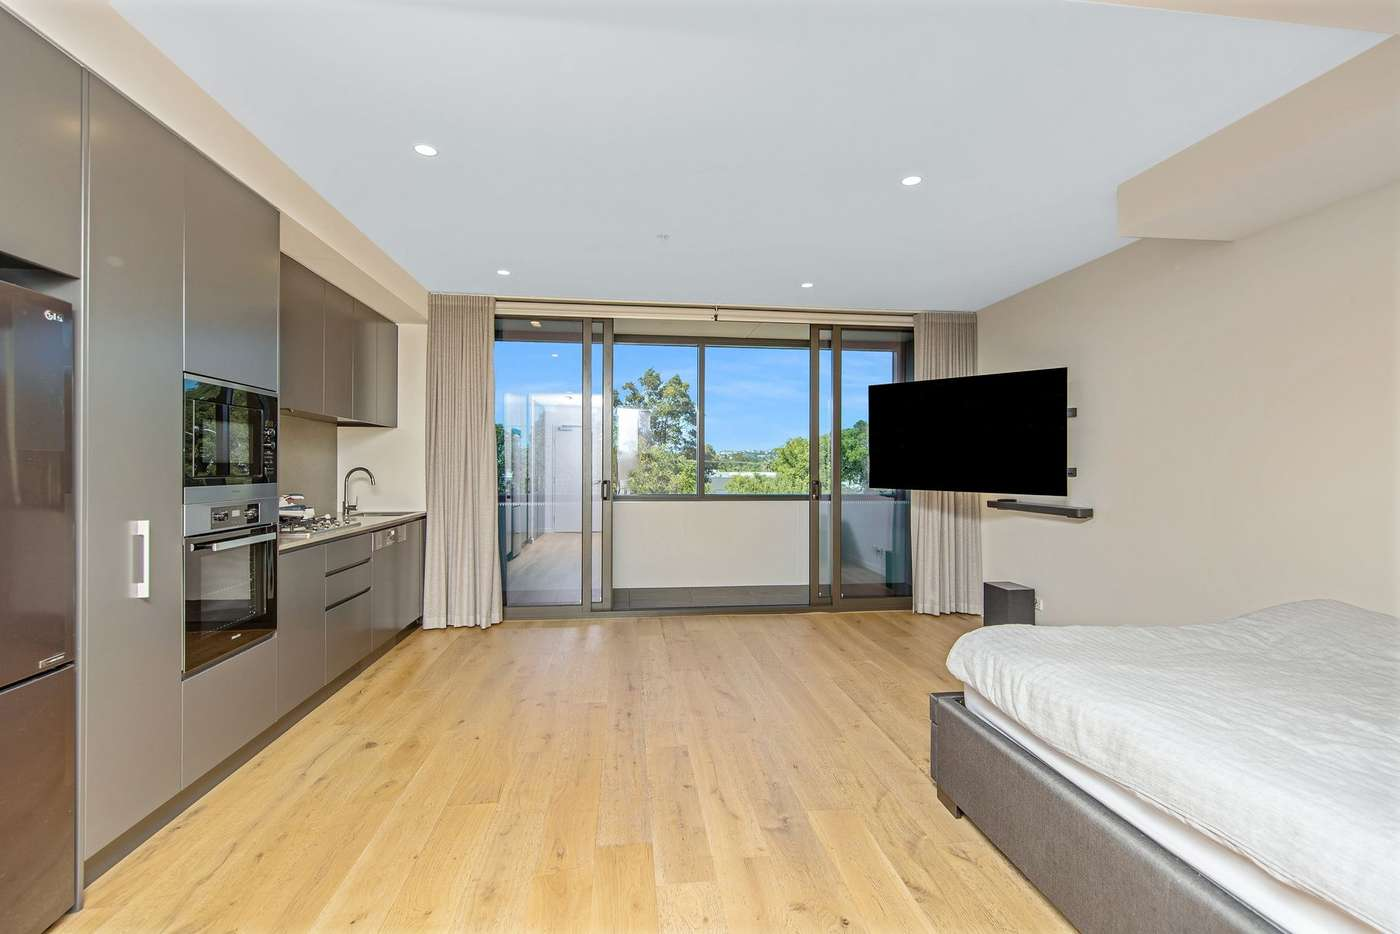 Main view of Homely studio listing, 202/470 King Street, Newcastle NSW 2300